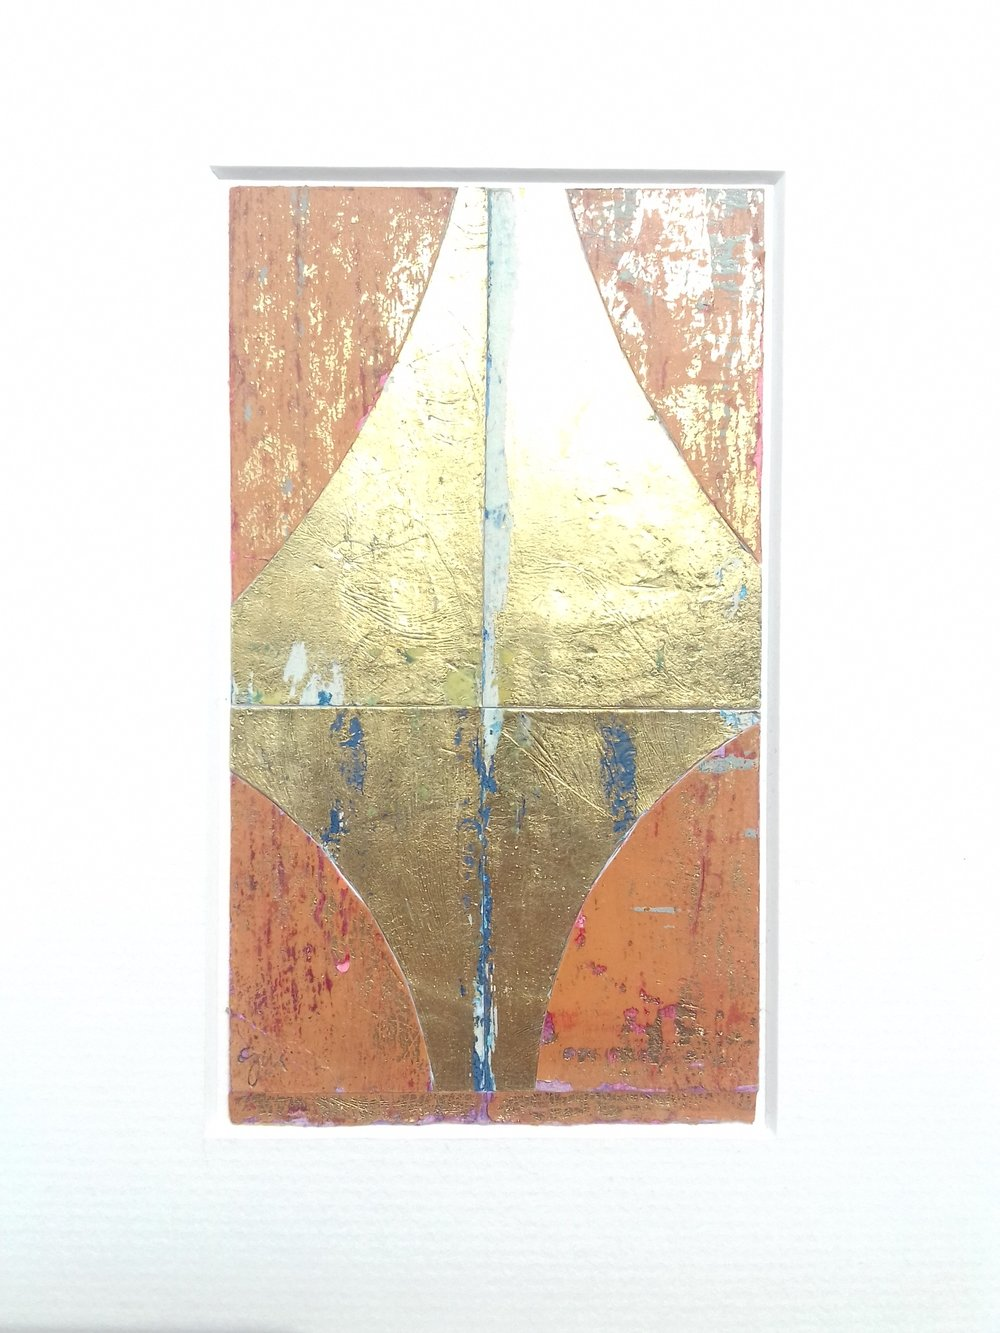 Artist: Alan McLeod  Title: Begin Again  Size: 13 x 8 cm  Medium: Gouache and metal leaf on paper  Price: £220   Buy Now